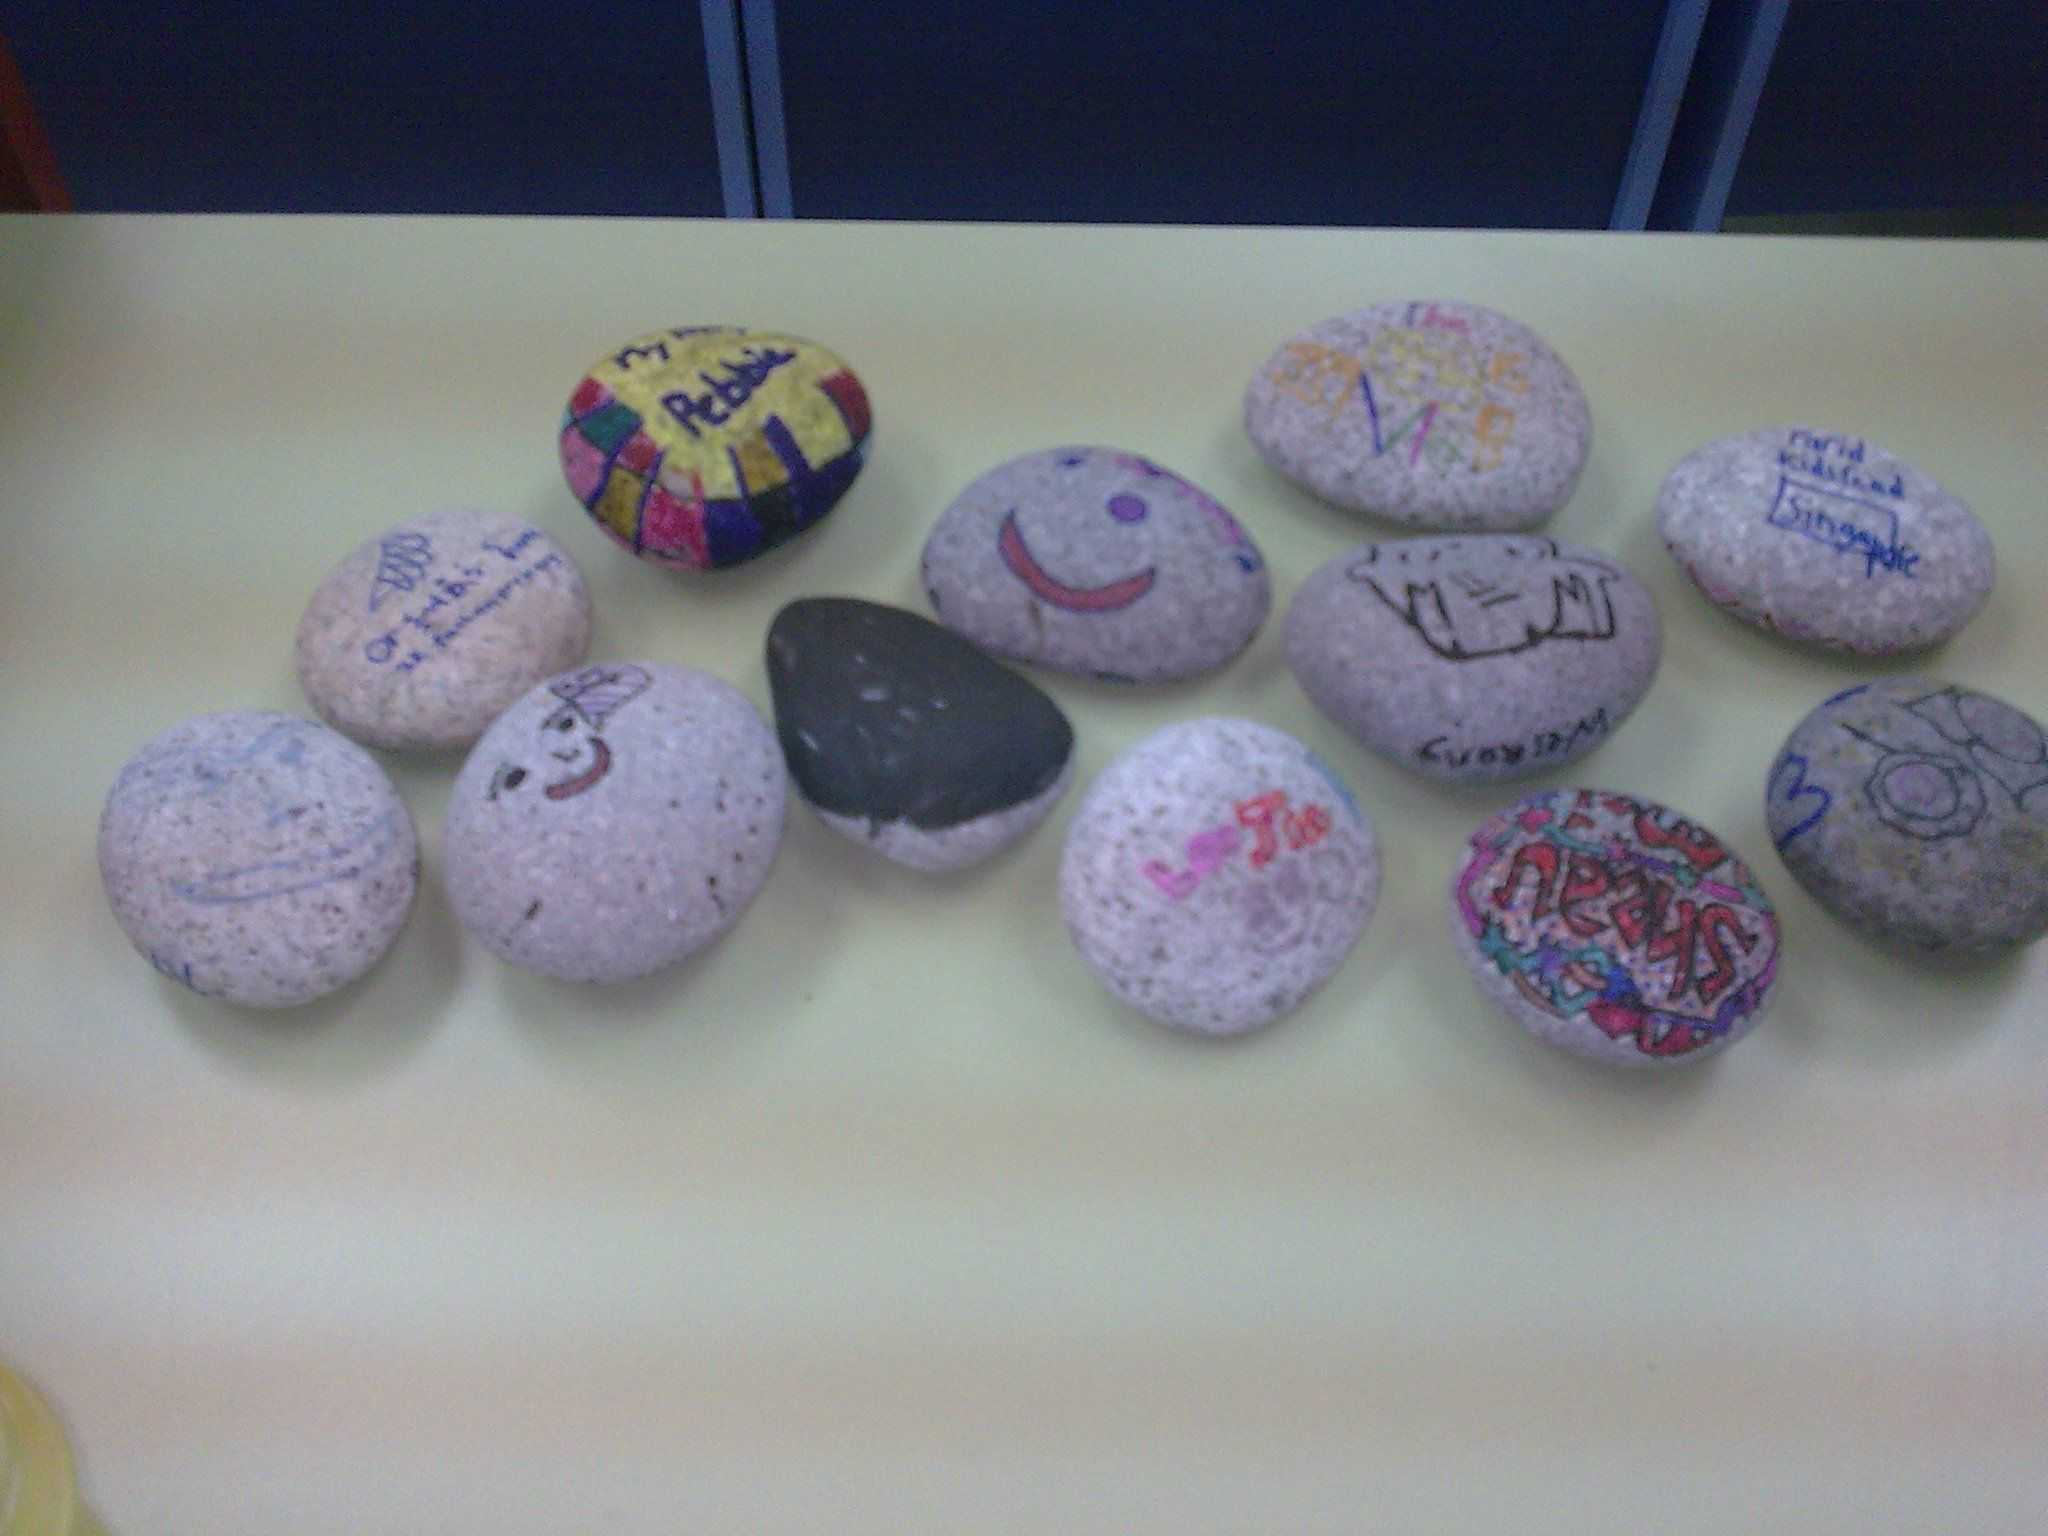 We Let The Kids Decorate Their Own Magic Pebbles After